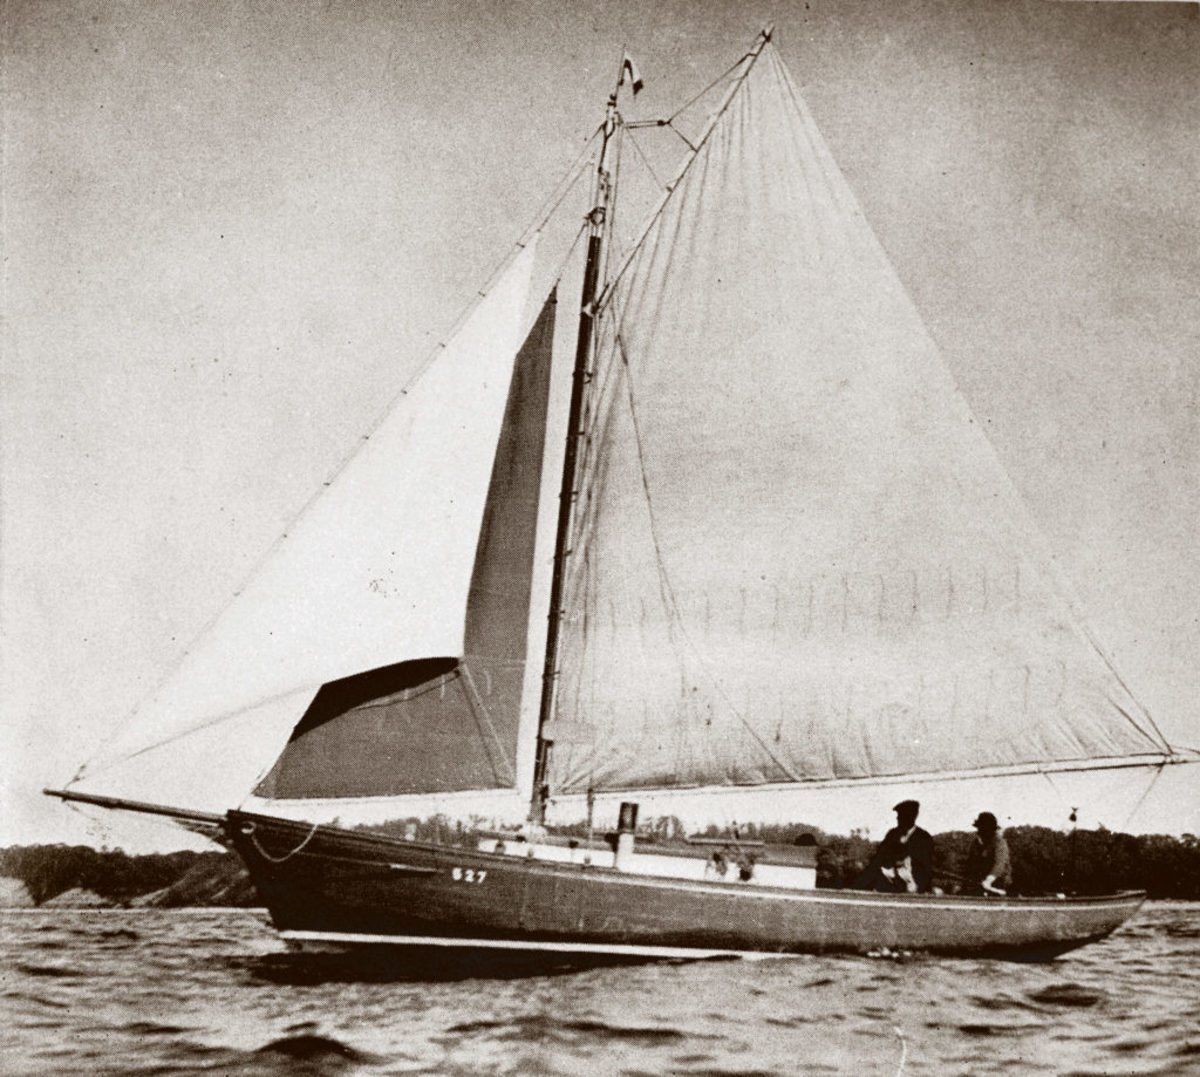 The gaff-rigged Great Western was not an easy boat for a man with no fingers to sail